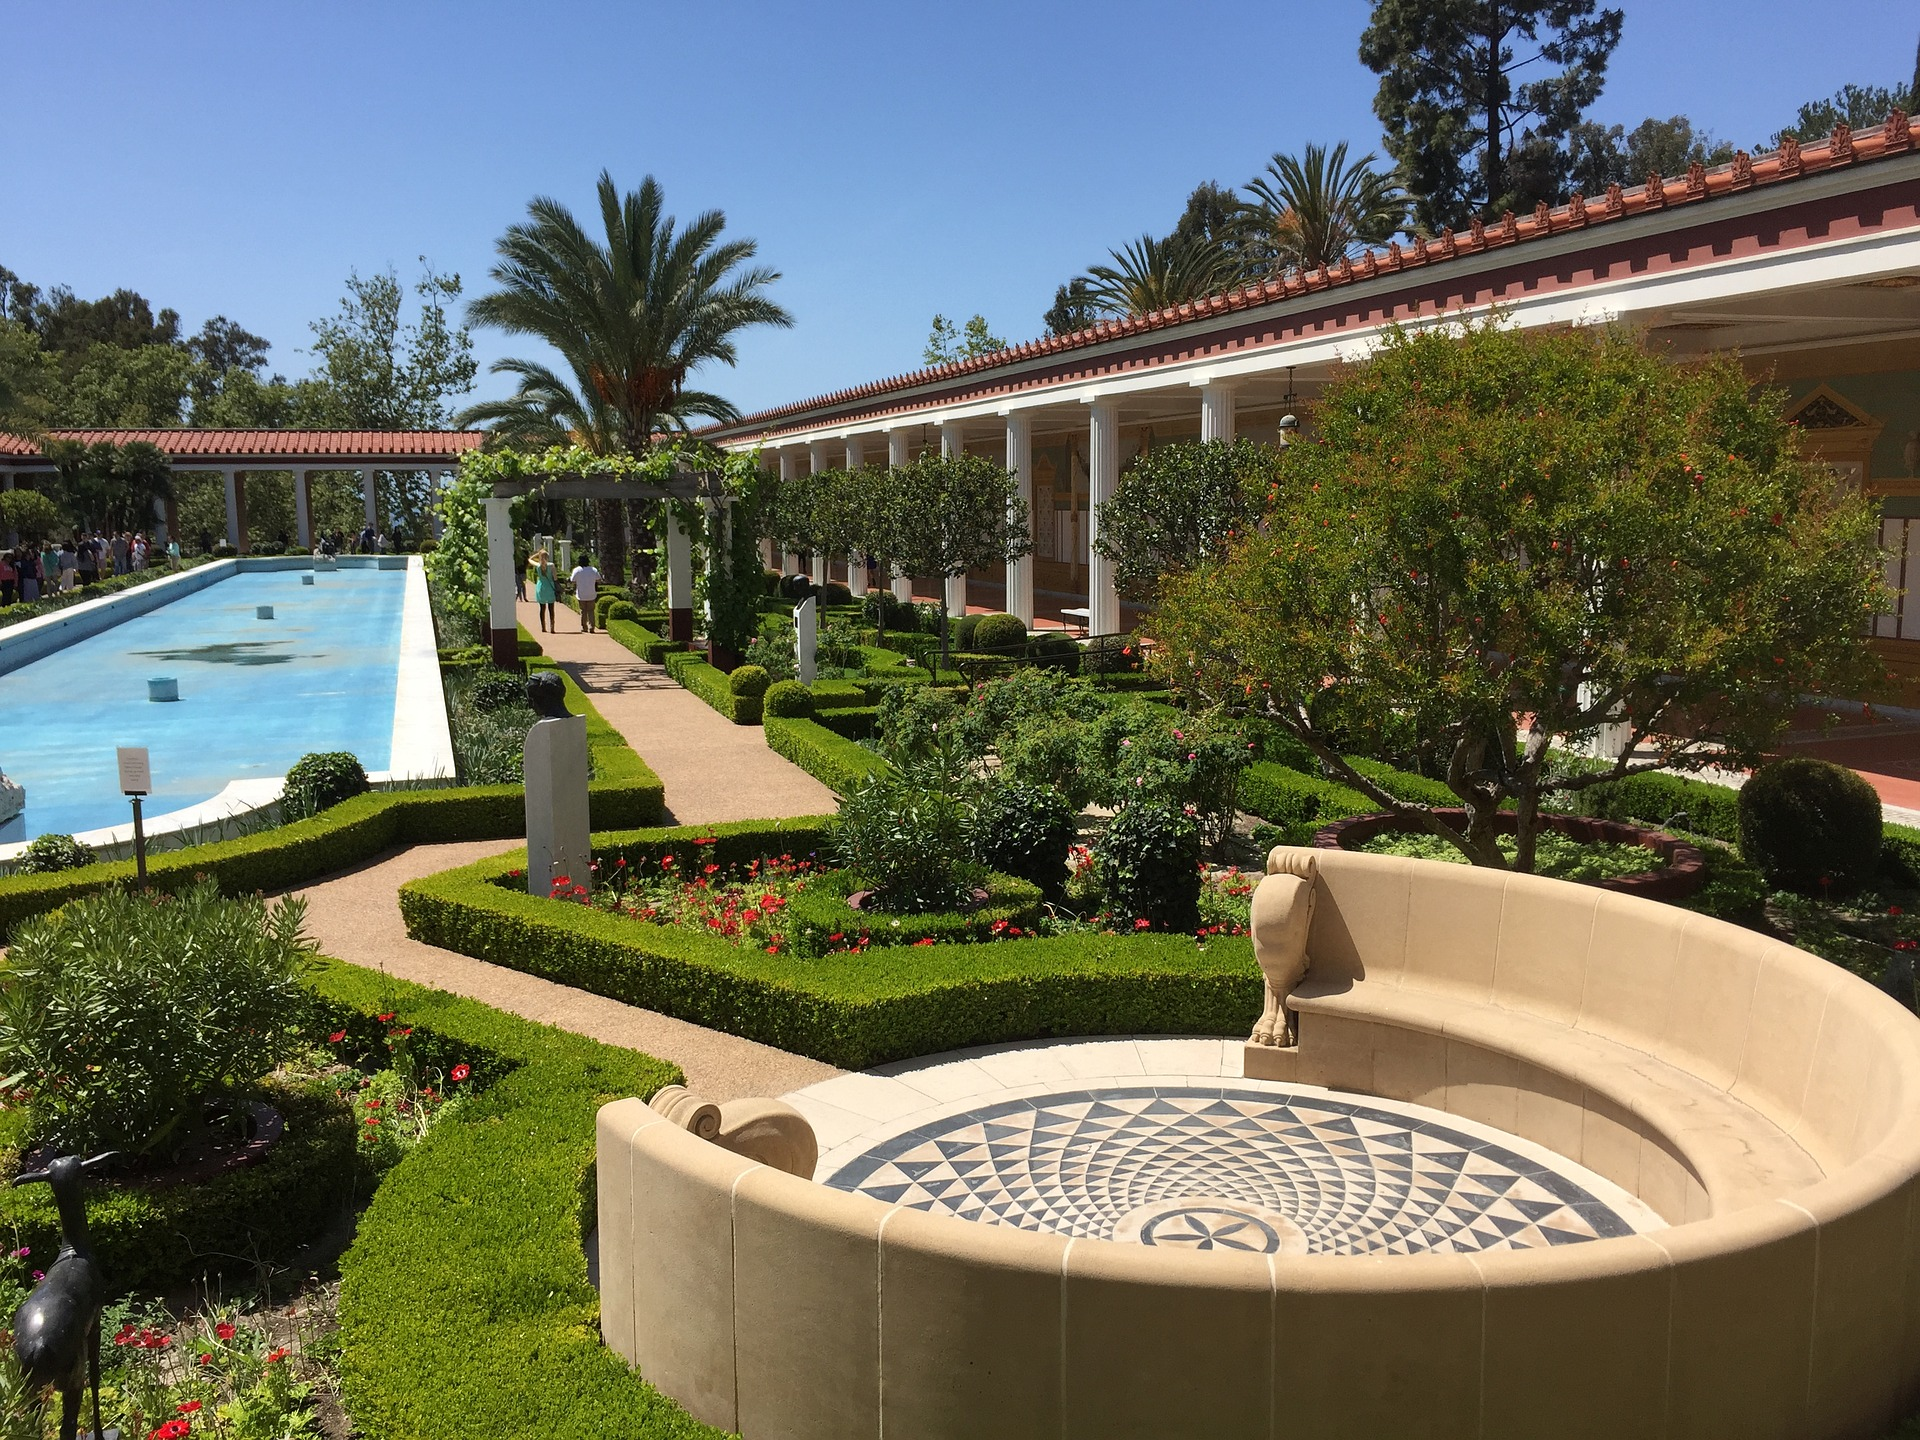 Self Hypnosis Audio - Beautiful hotel gardens with pool and circular ceramic bench